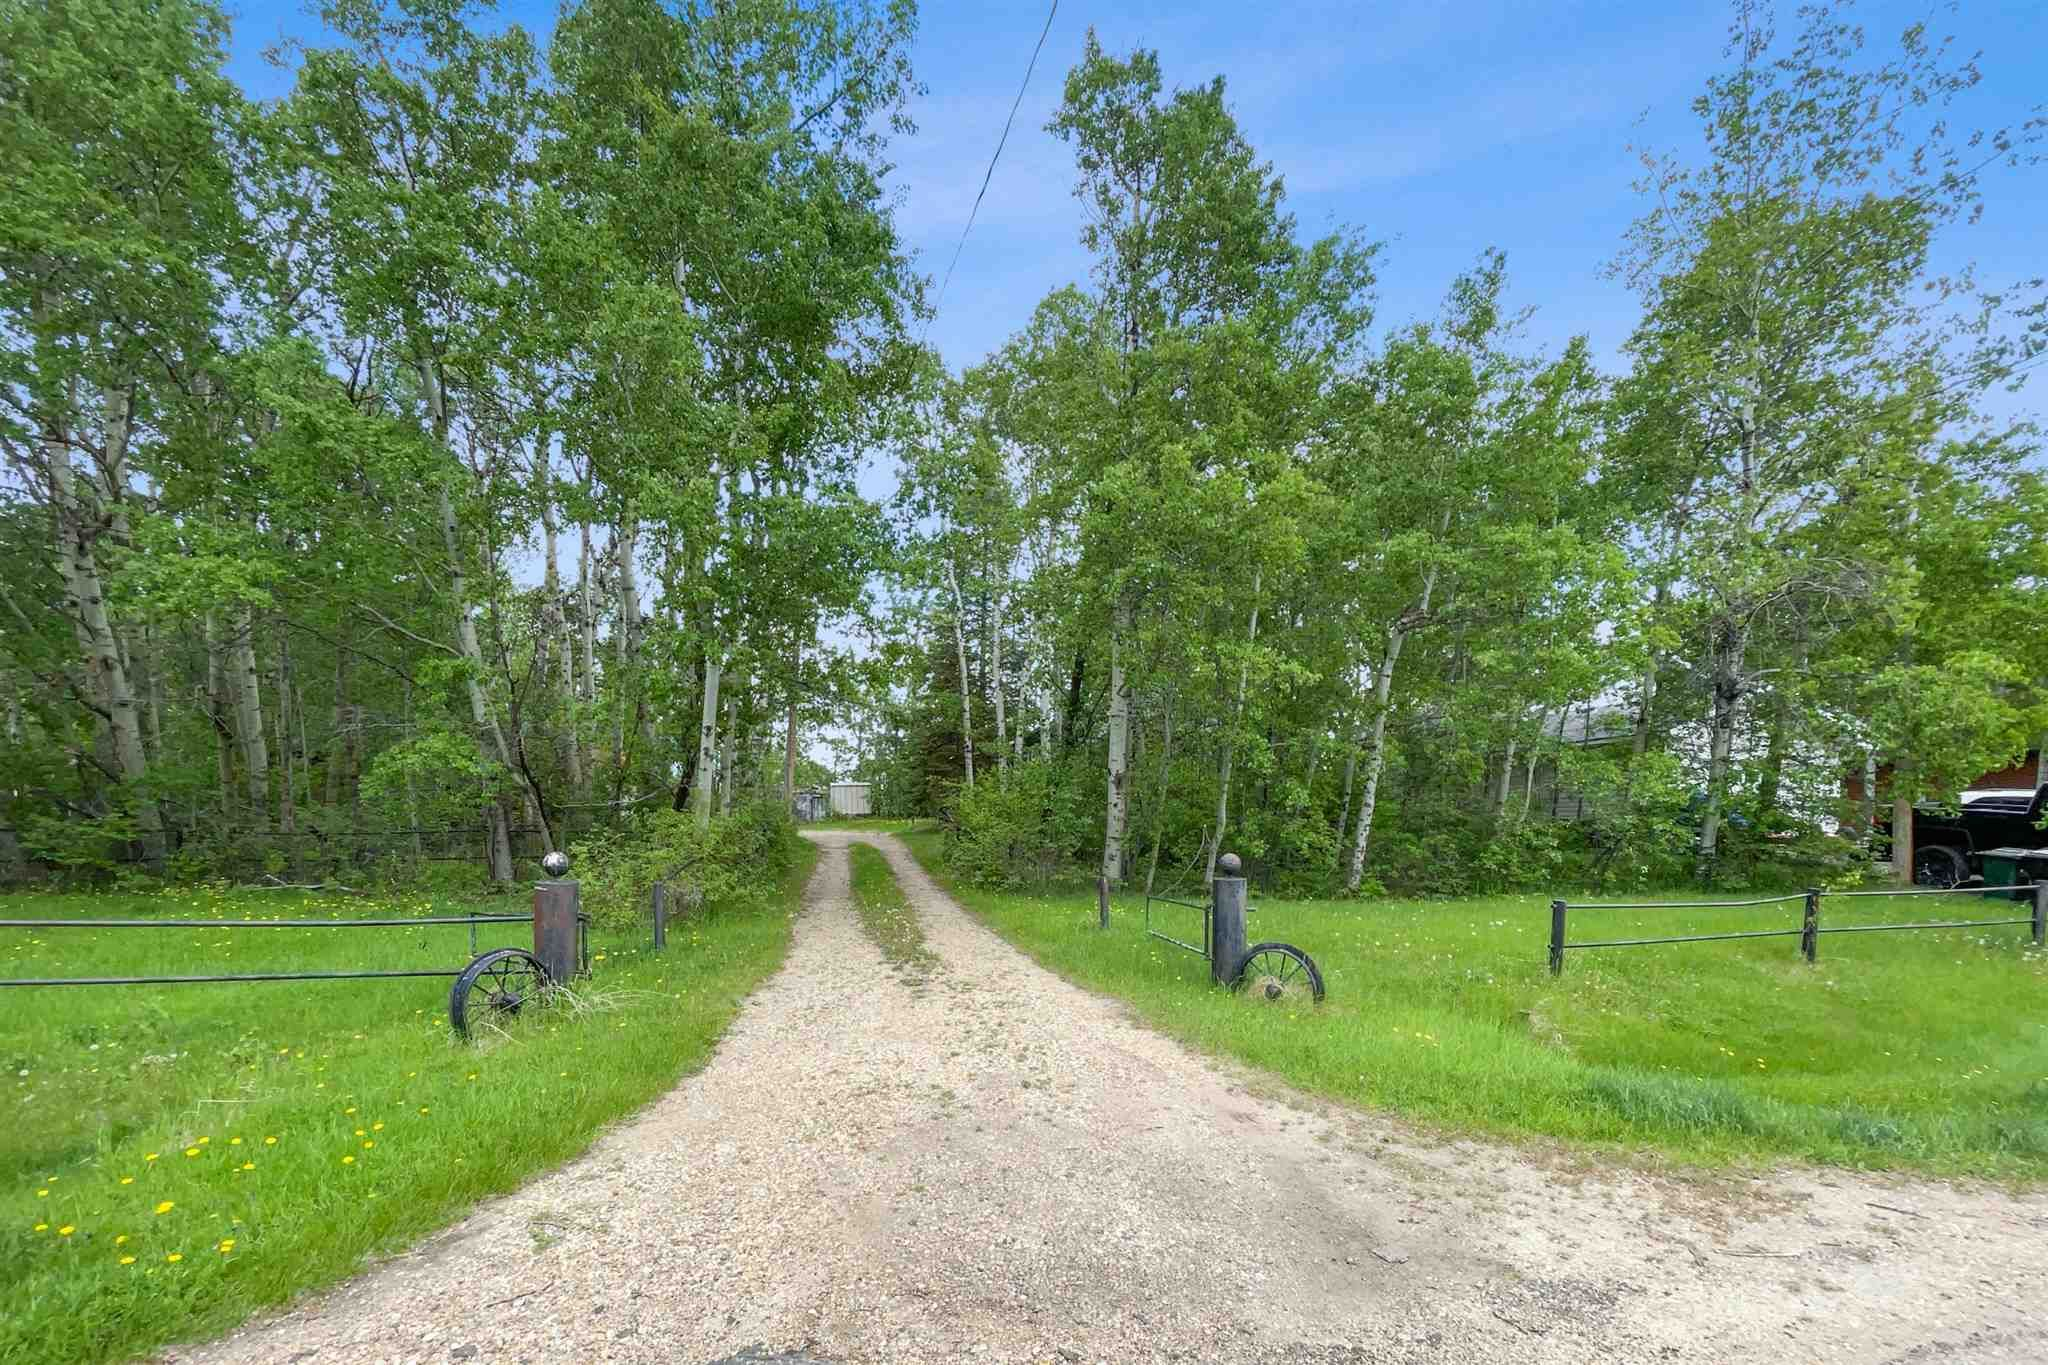 Main Photo: 84 52059 RGE RD 220: Rural Strathcona County House for sale : MLS®# E4247284